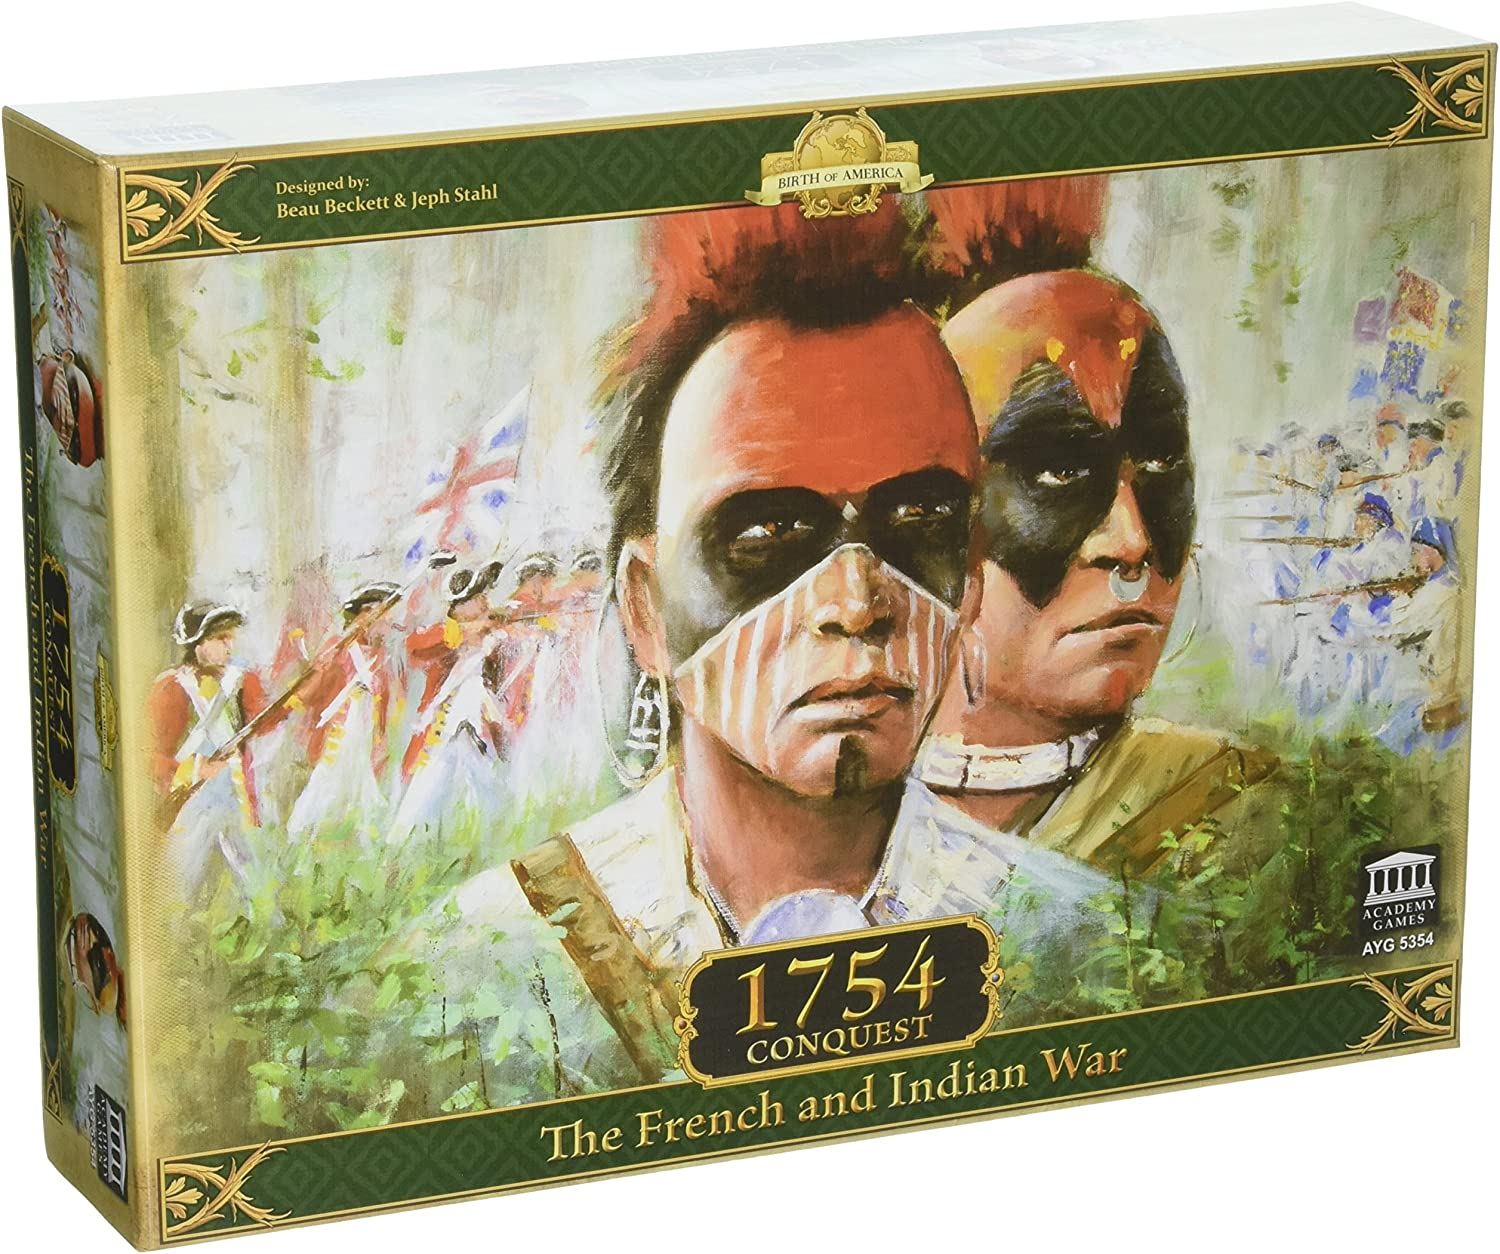 Academy Games ACA05354 1754 Conquest The French and Indian War Juego de Mesa: Amazon.es: Juguetes y juegos